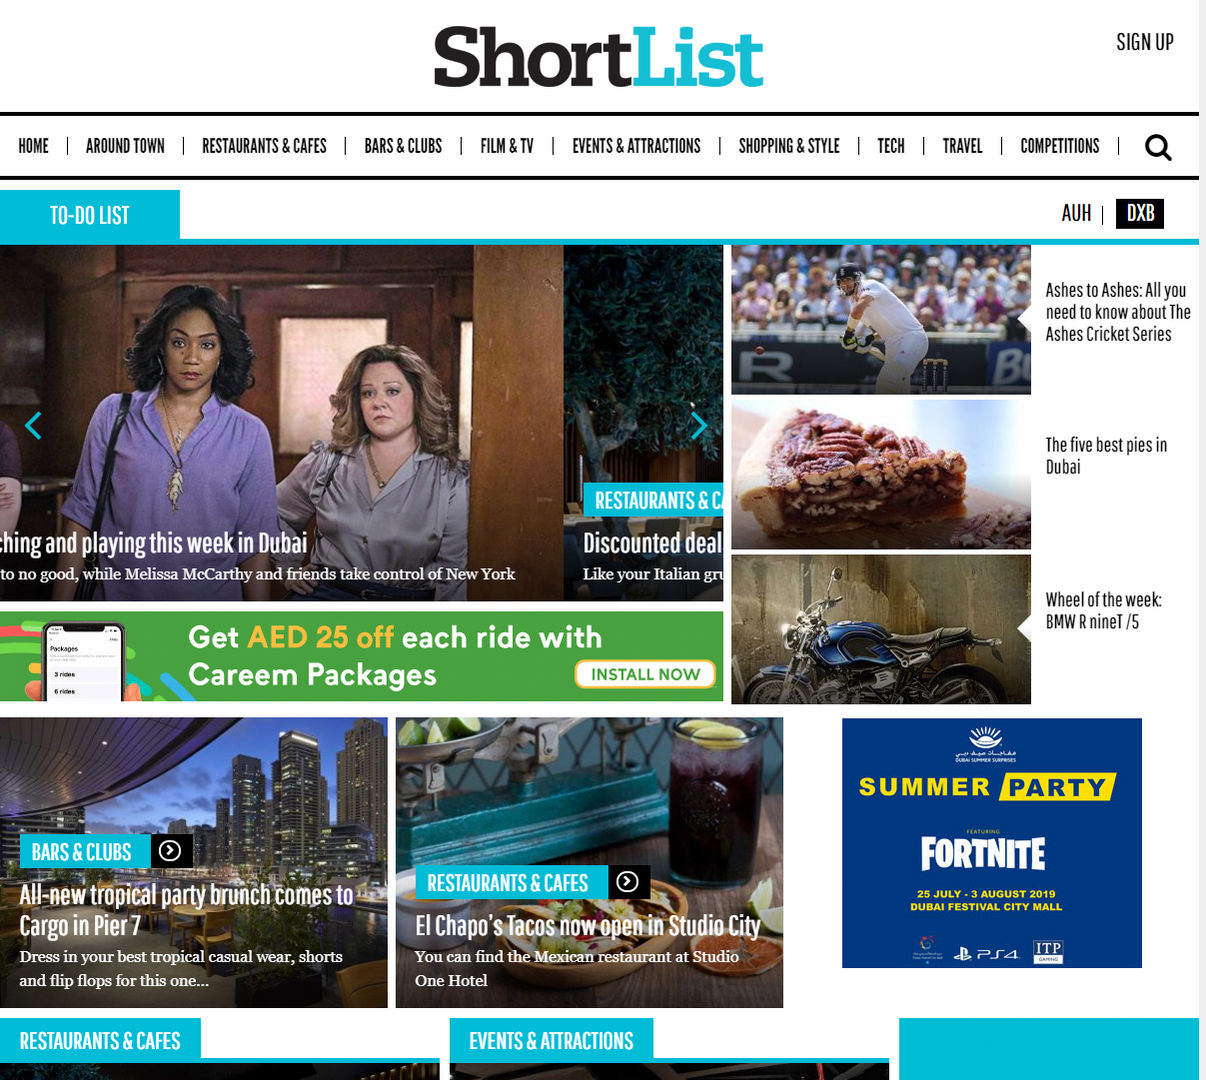 ShortListDubai launched